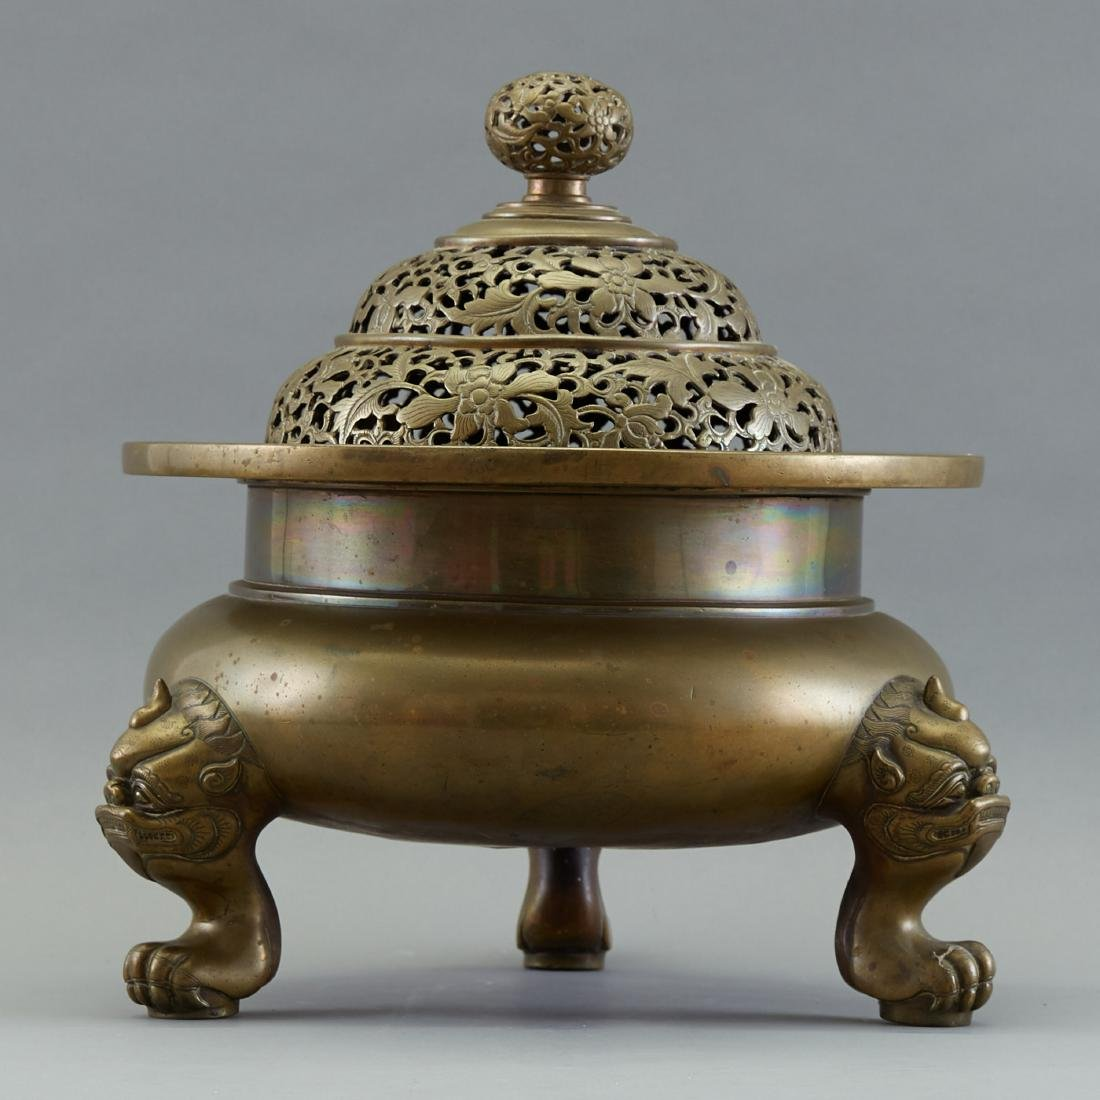 19th c. Chinese Covered Bronze Brazier or Censer